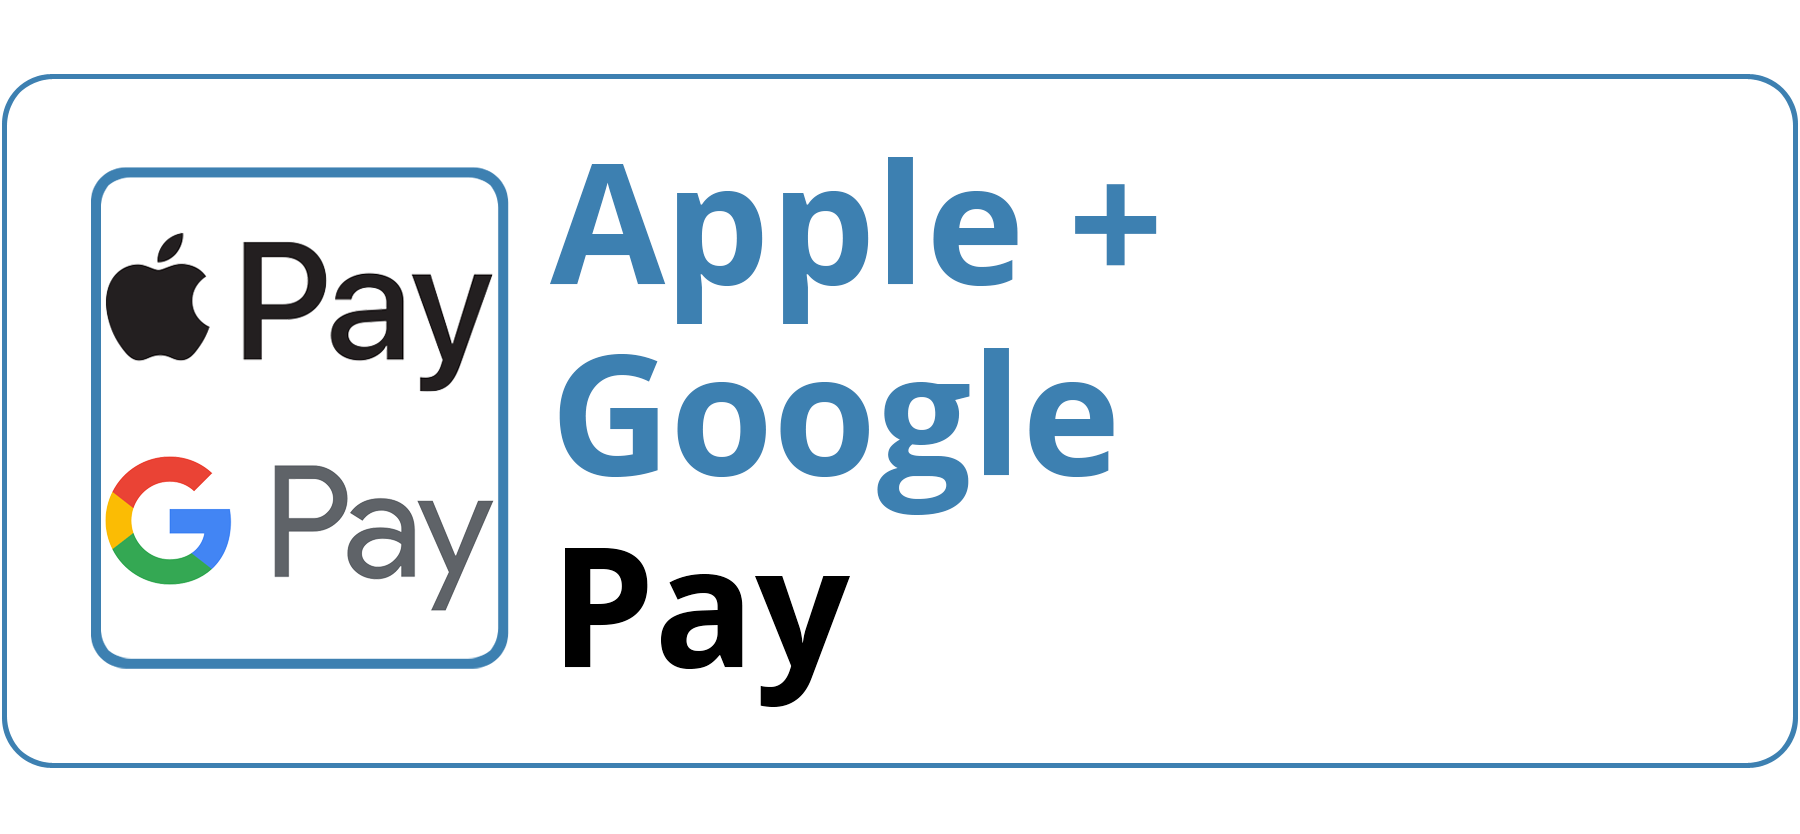 Apple / Google PAY